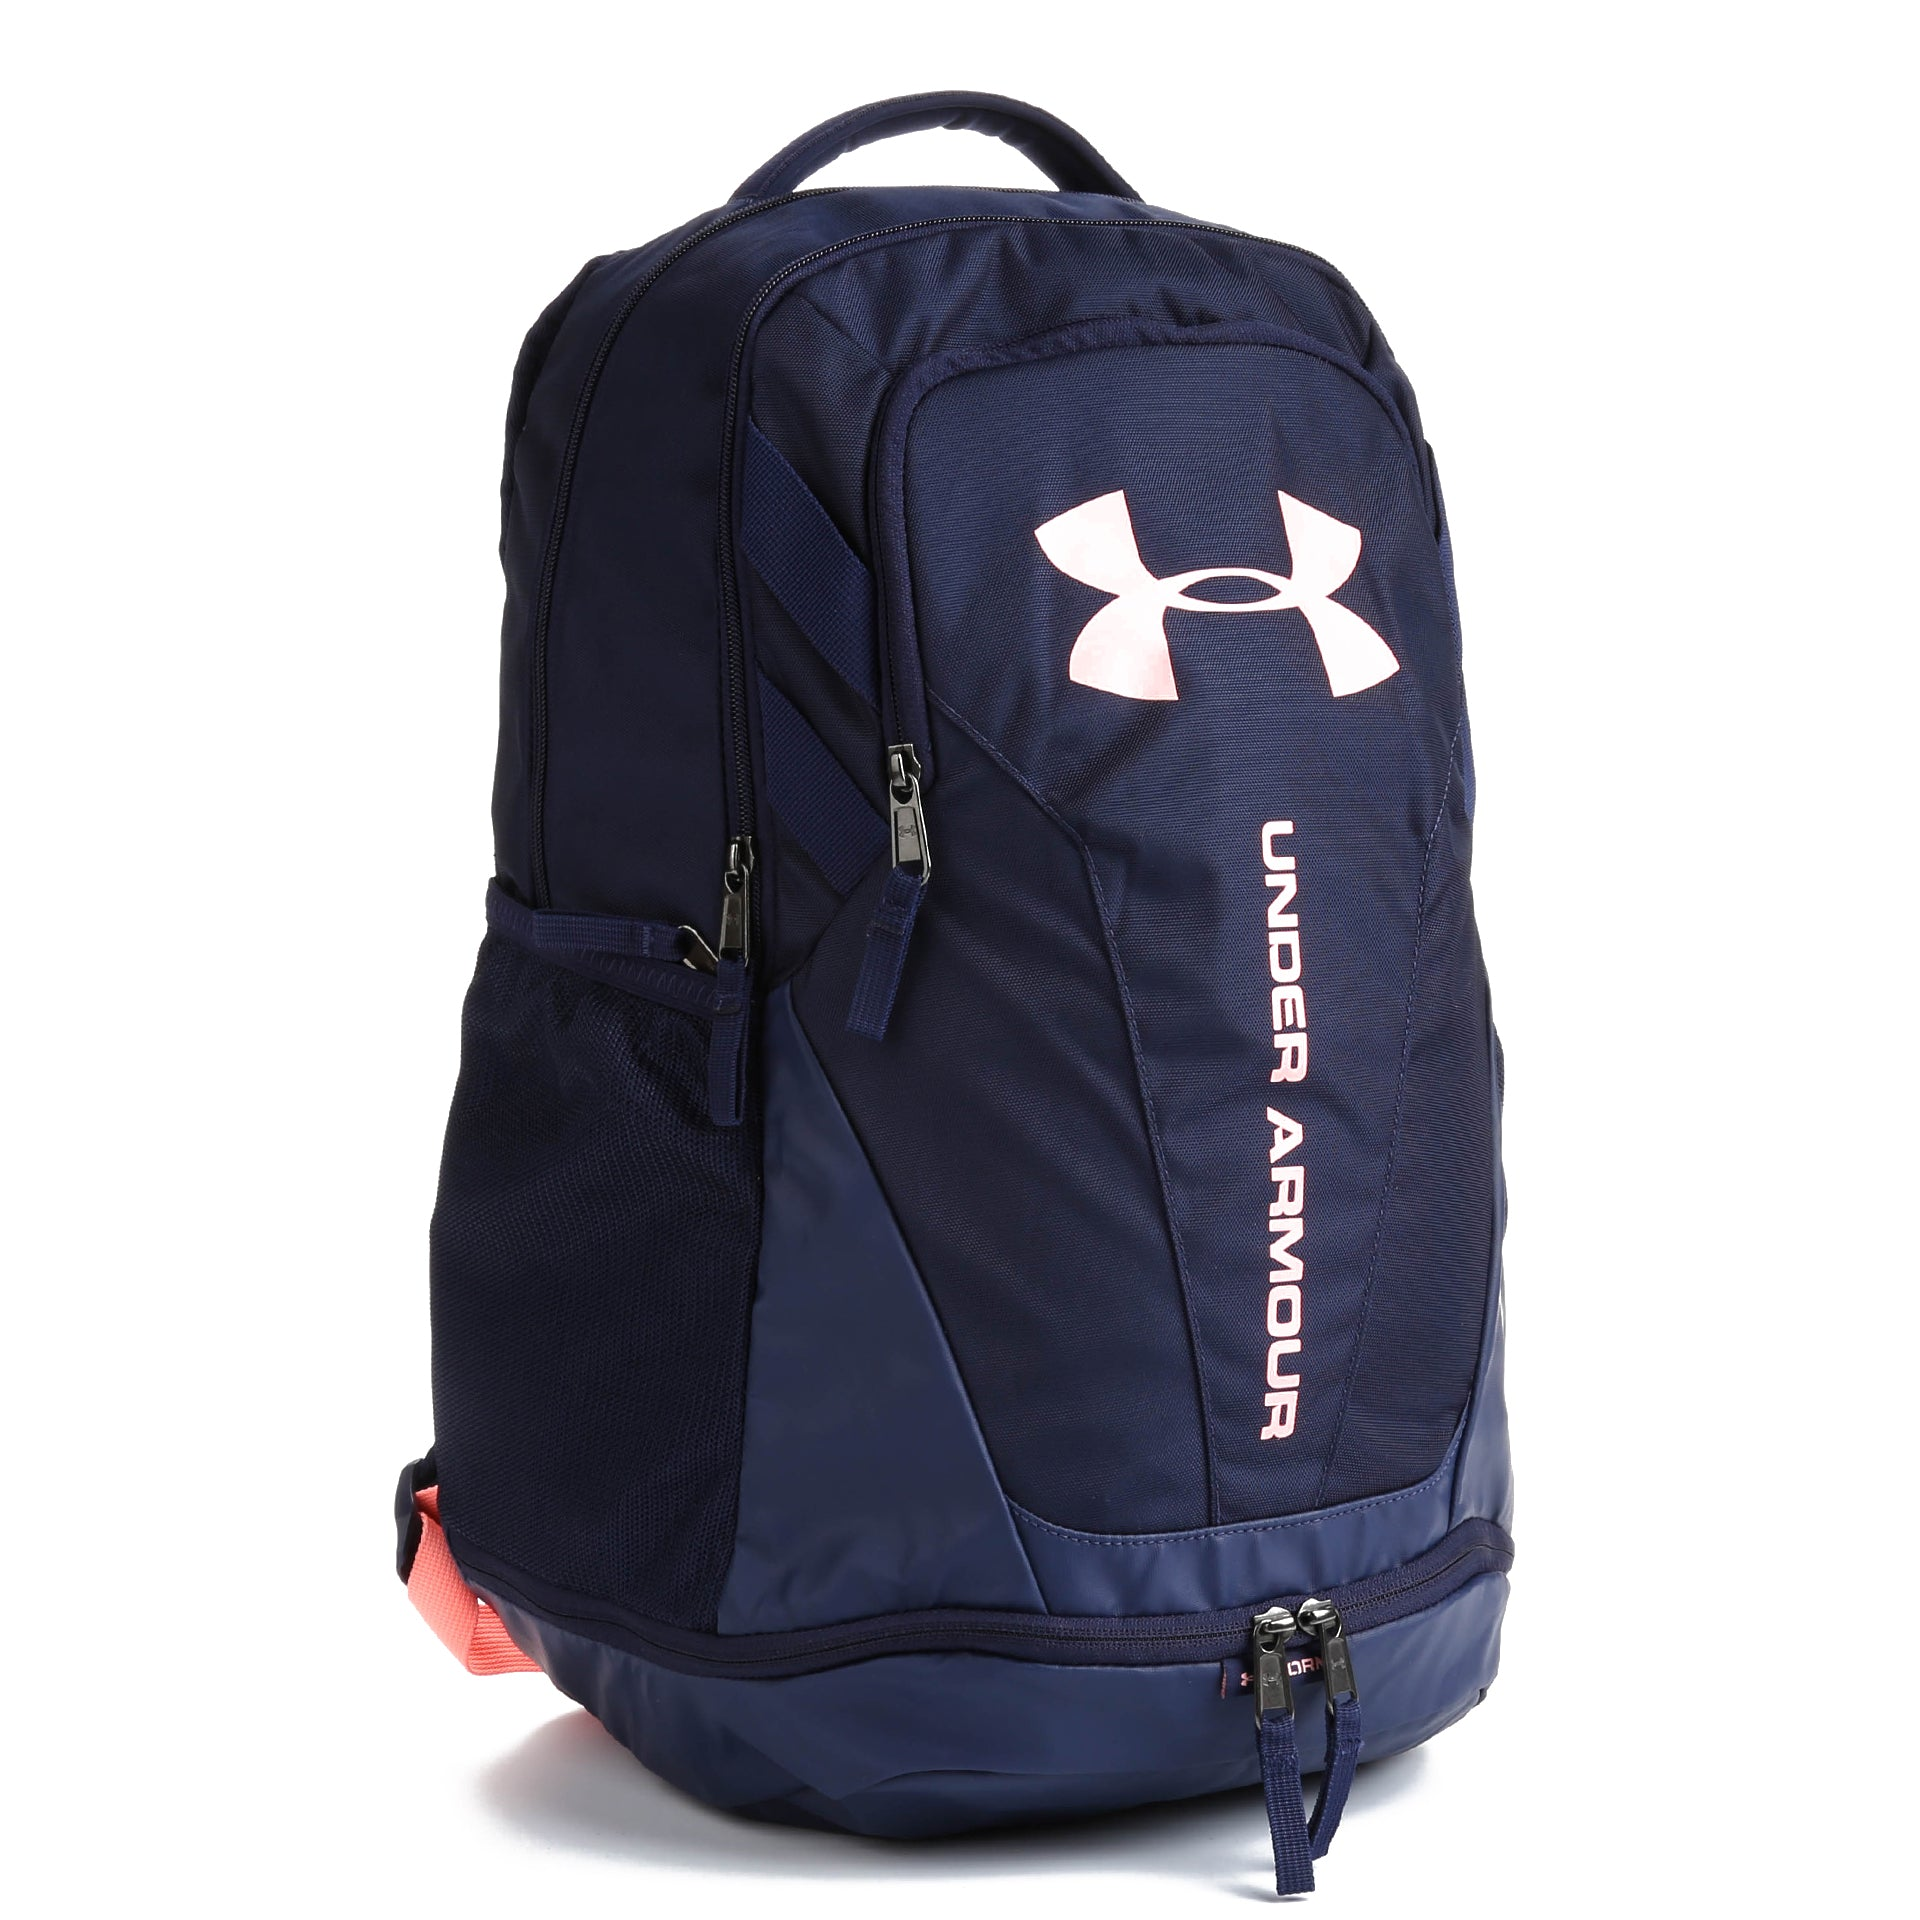 100% authentic a40c0 c6f9c Under Armour Hustle 3.0 Backpack - Midnight Navy